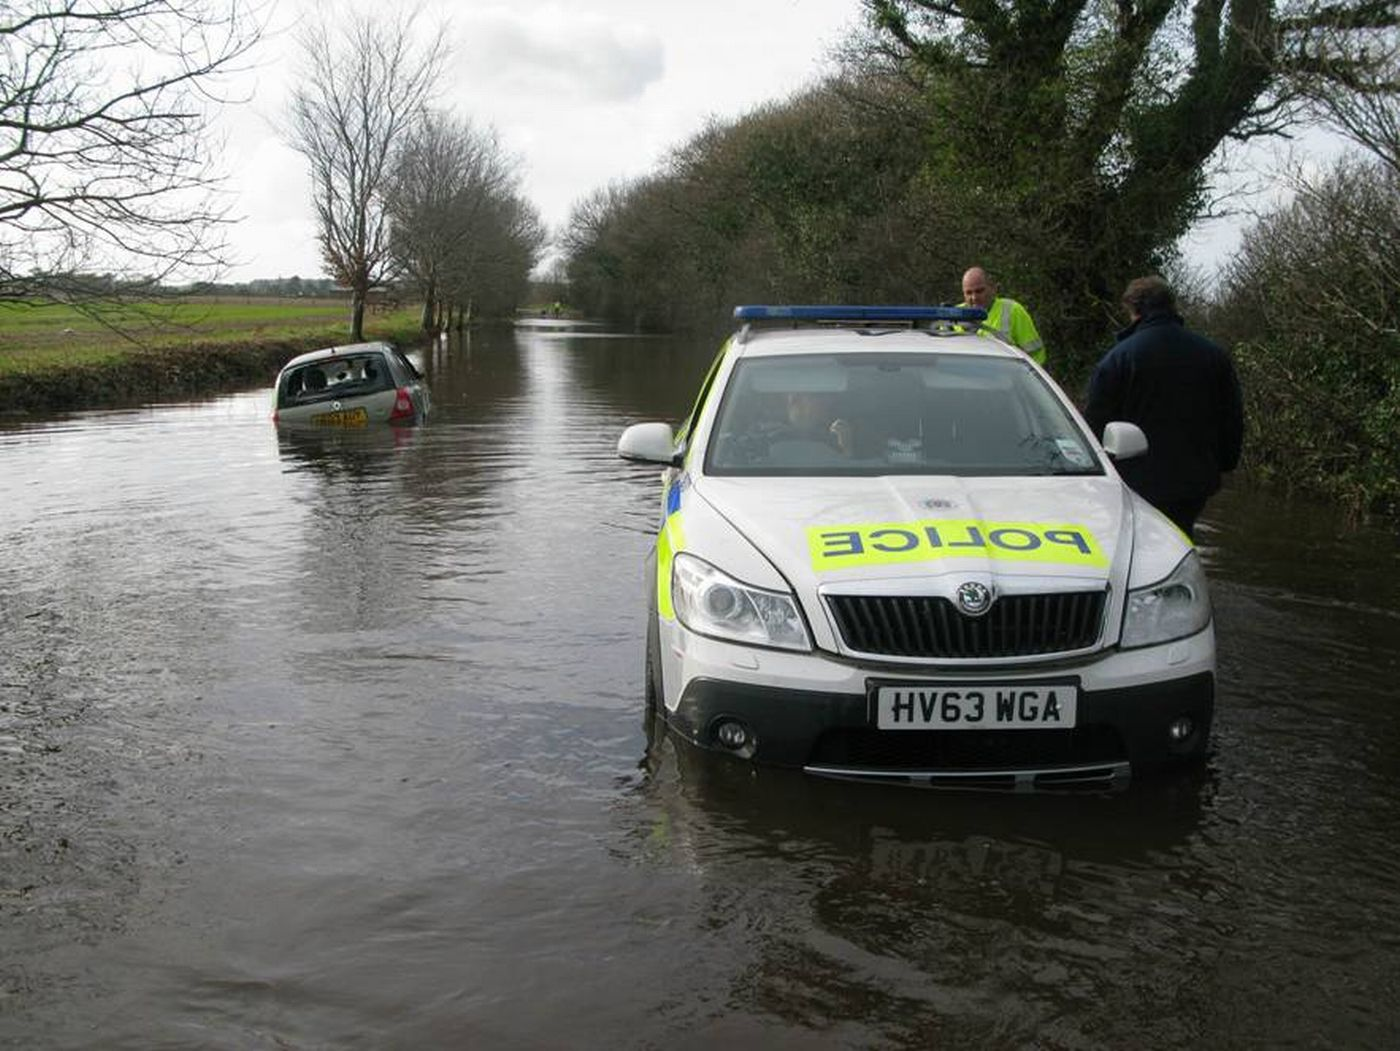 UPDATE WITH VIDEO: Police car stuck in floodwater as area braces itself for more rain